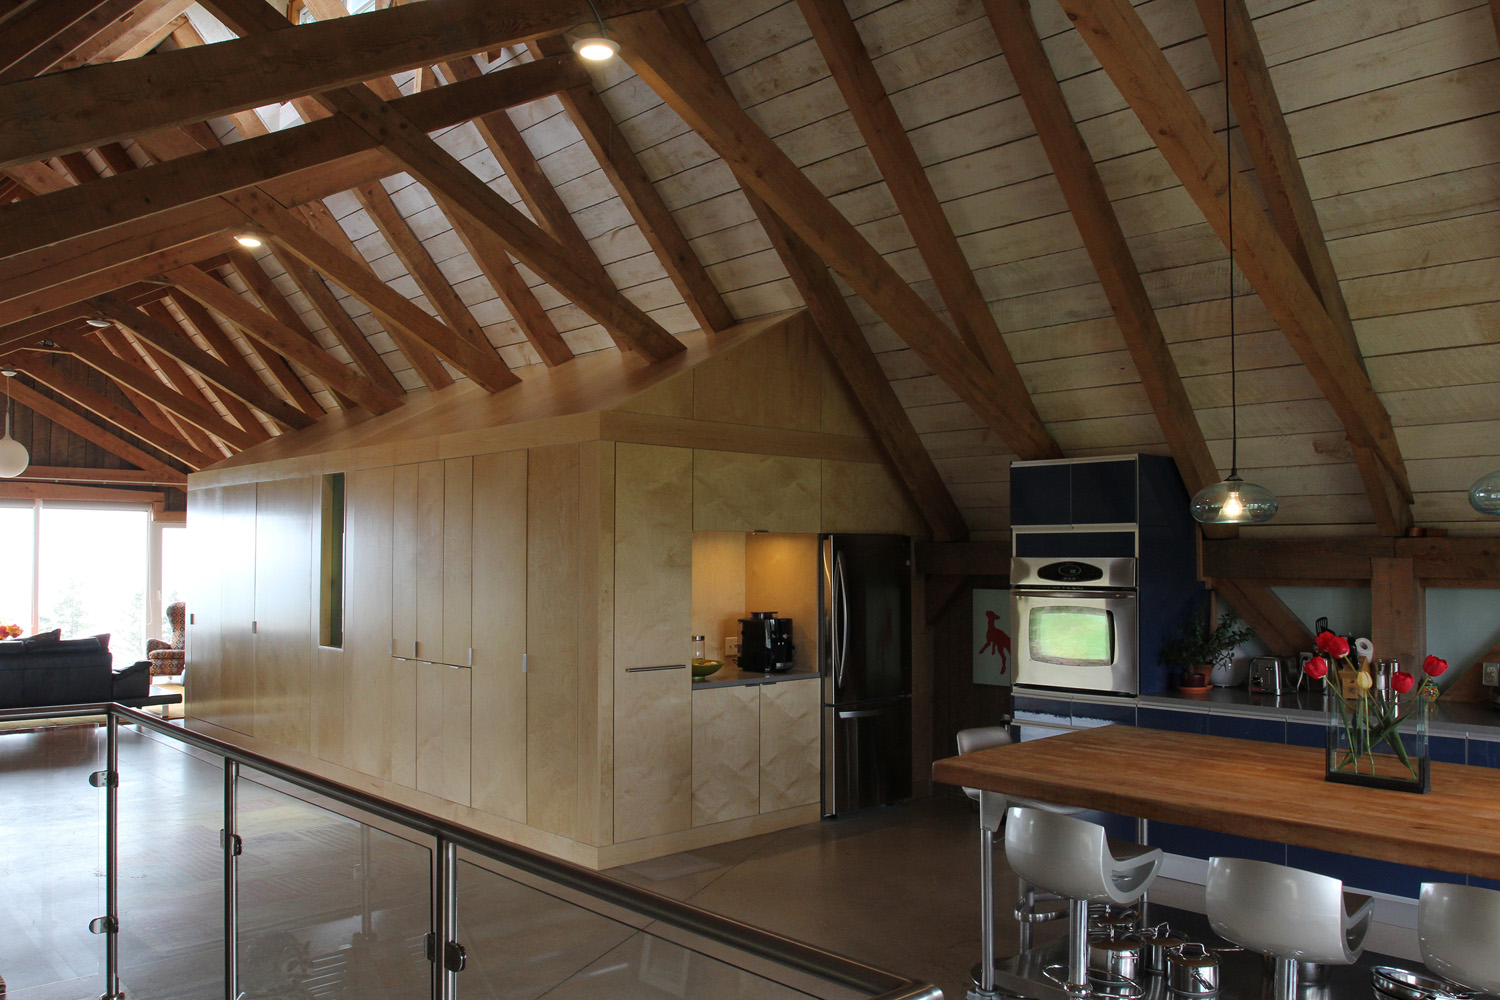 houdinidesign_ARCHITECTS_Ritchie-Gidney_Residence_Sandy-Cove_Digby_Acadian+Timber_Frame_Modern_Renovation_Washroom_Exterior.jpg